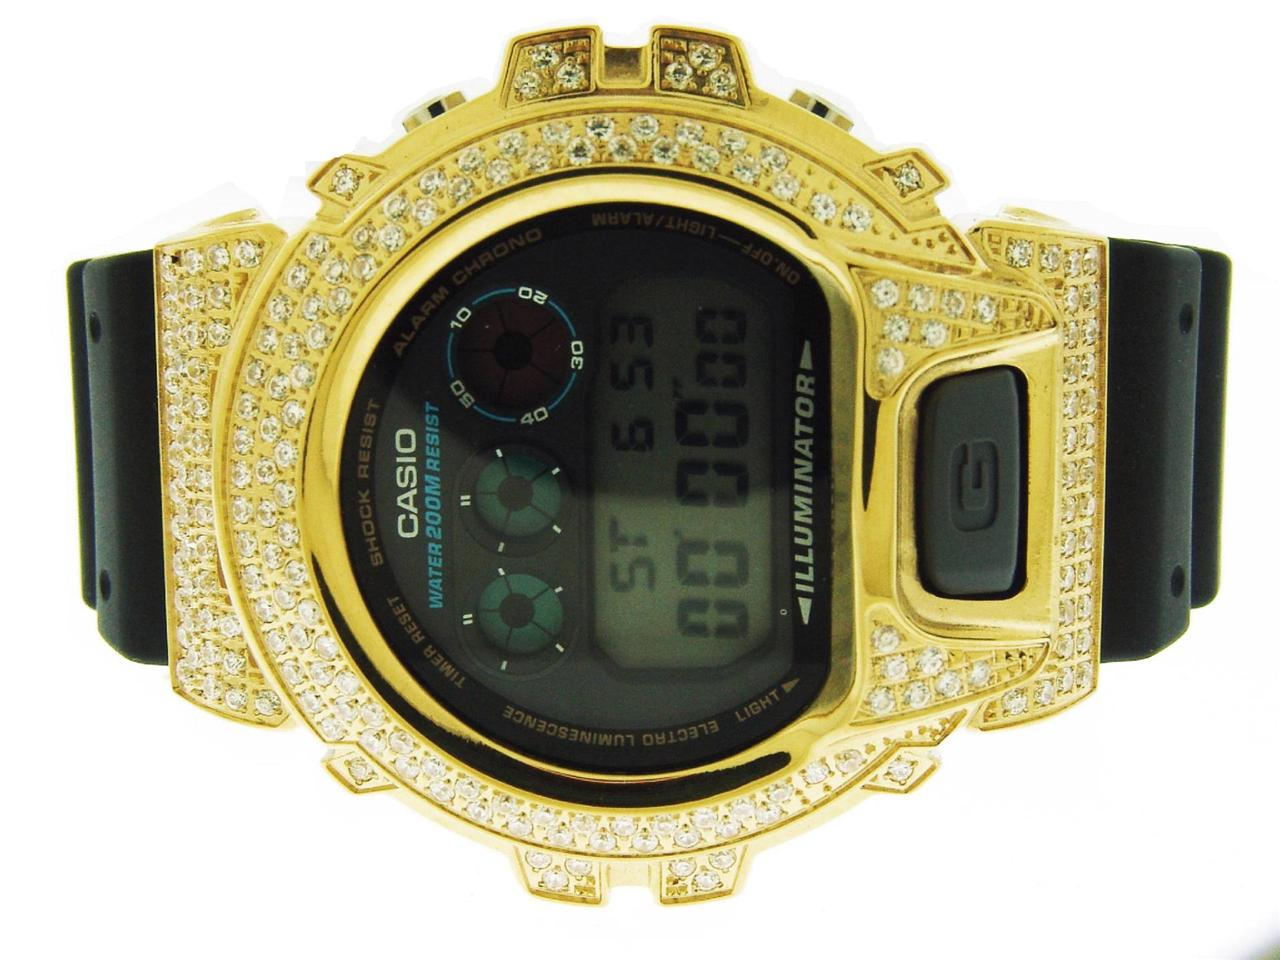 Casio g shock Men's Casio G Shock High quality CZ white crystal Watch Yellow case black face at Sears.com